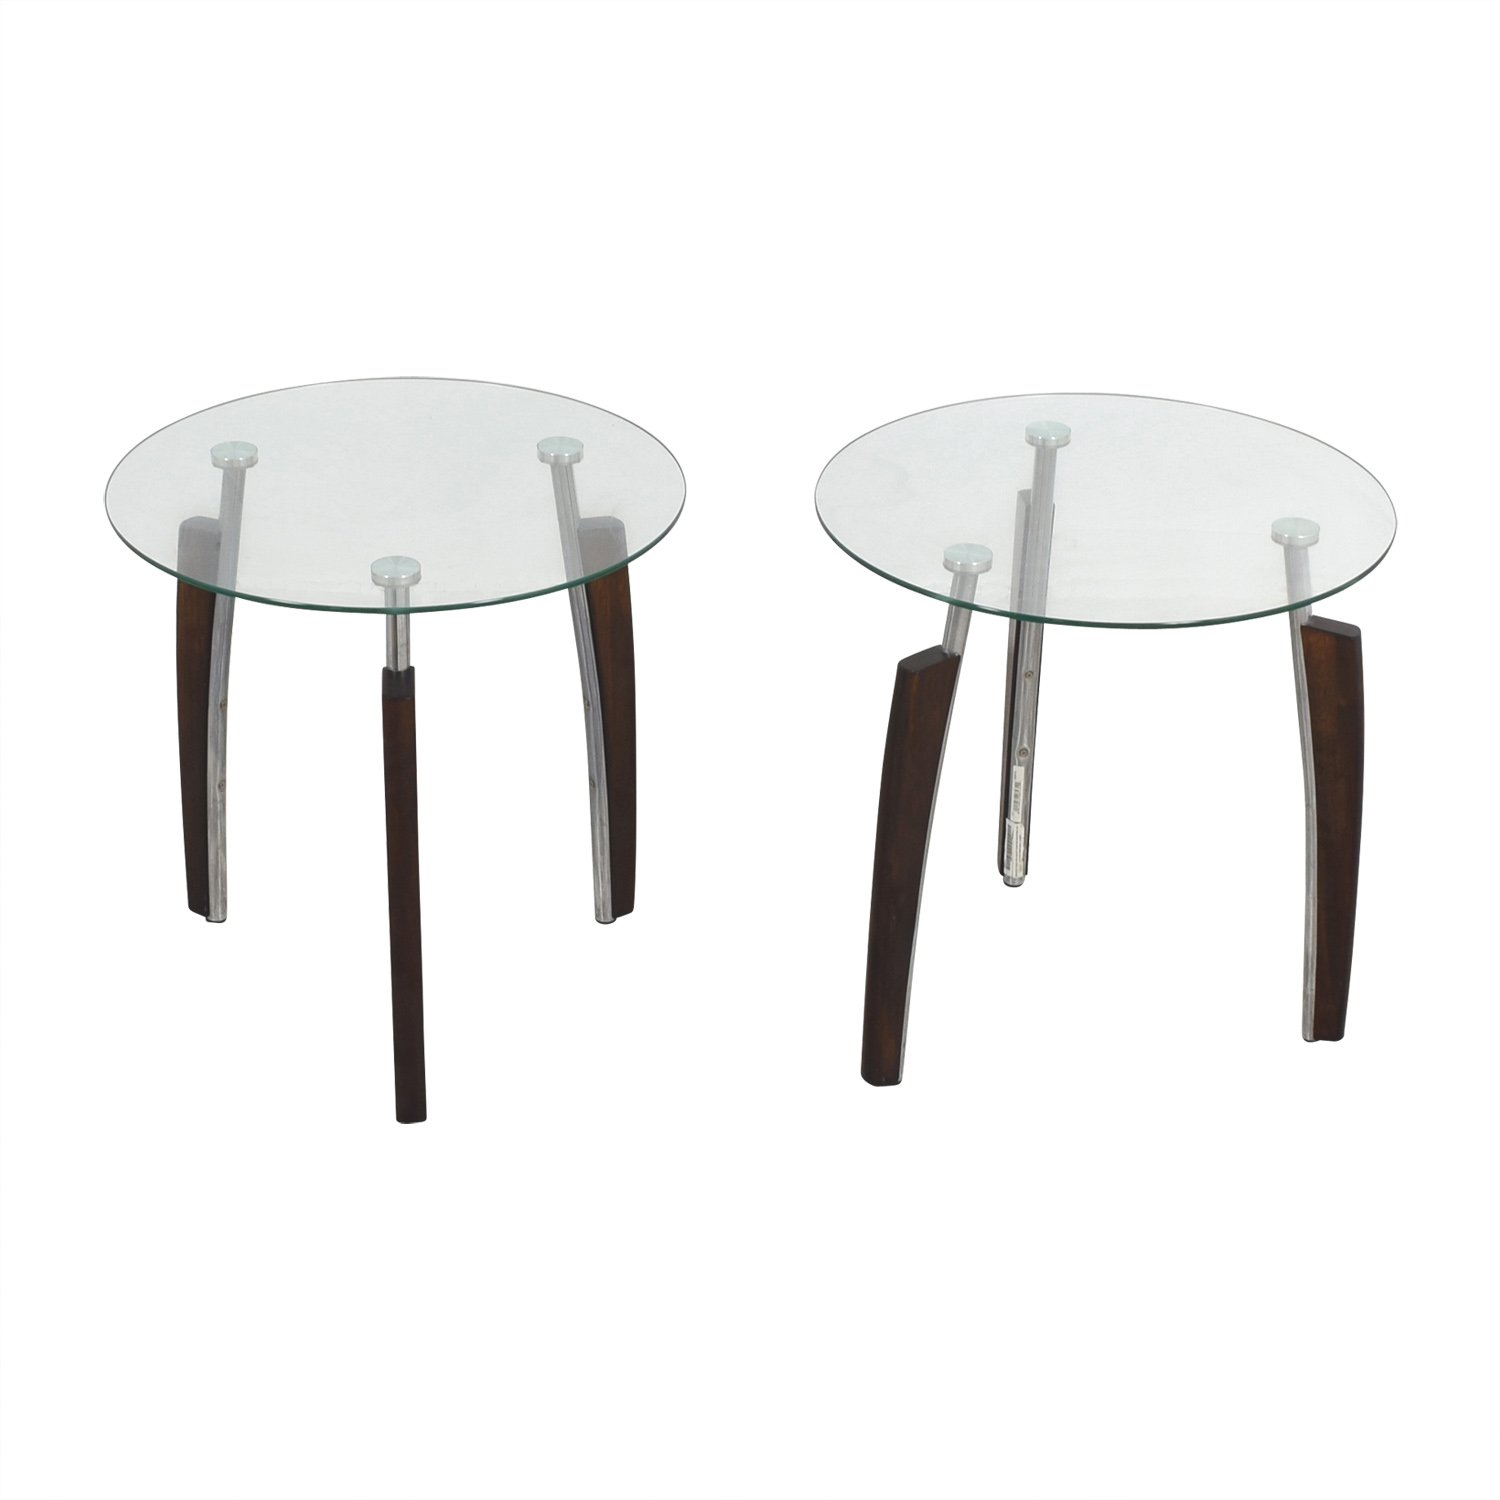 buy Jennifer Convertibles Jennifer Convertibles Round Tripod Side Tables online